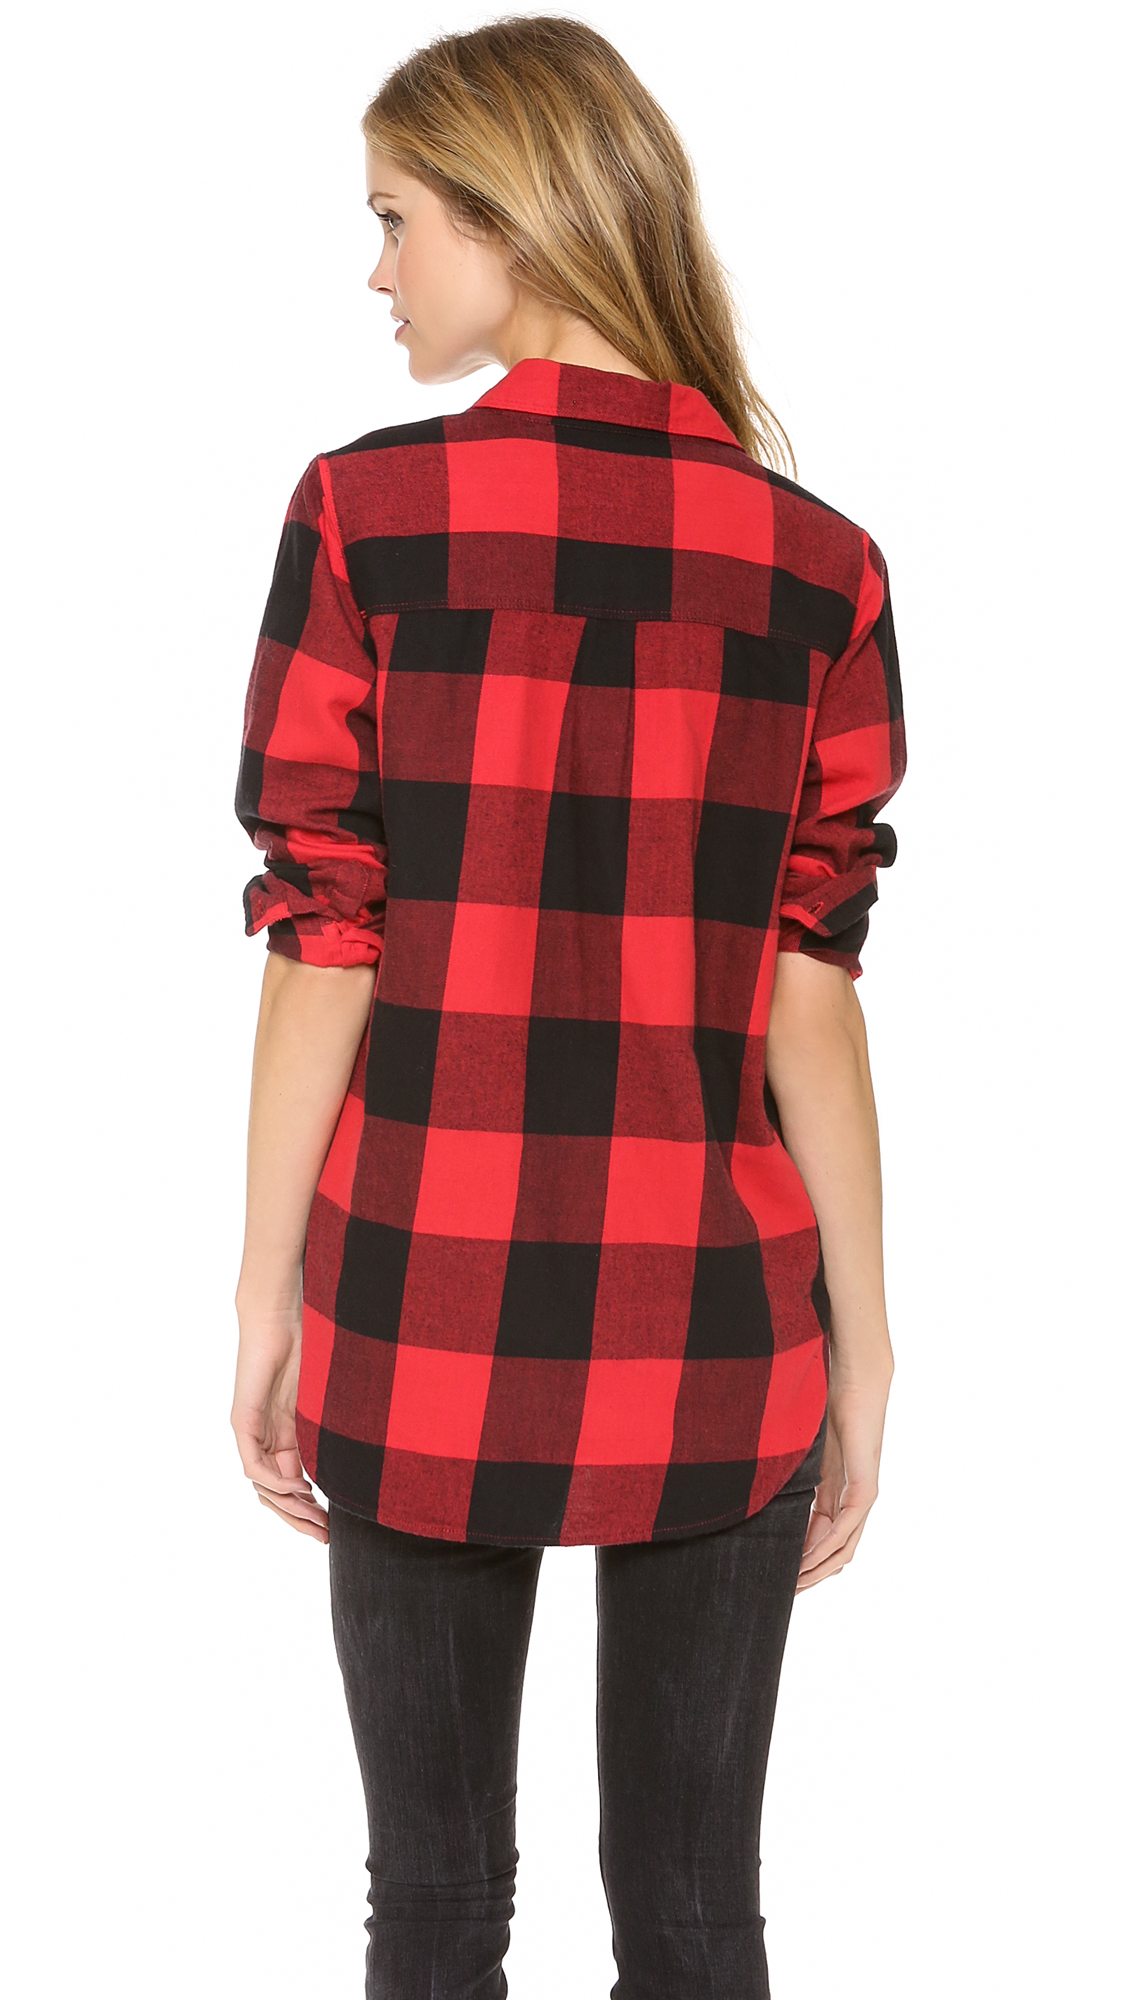 Madewell Buffalo Check Ex Bf Shirt in Black | Lyst